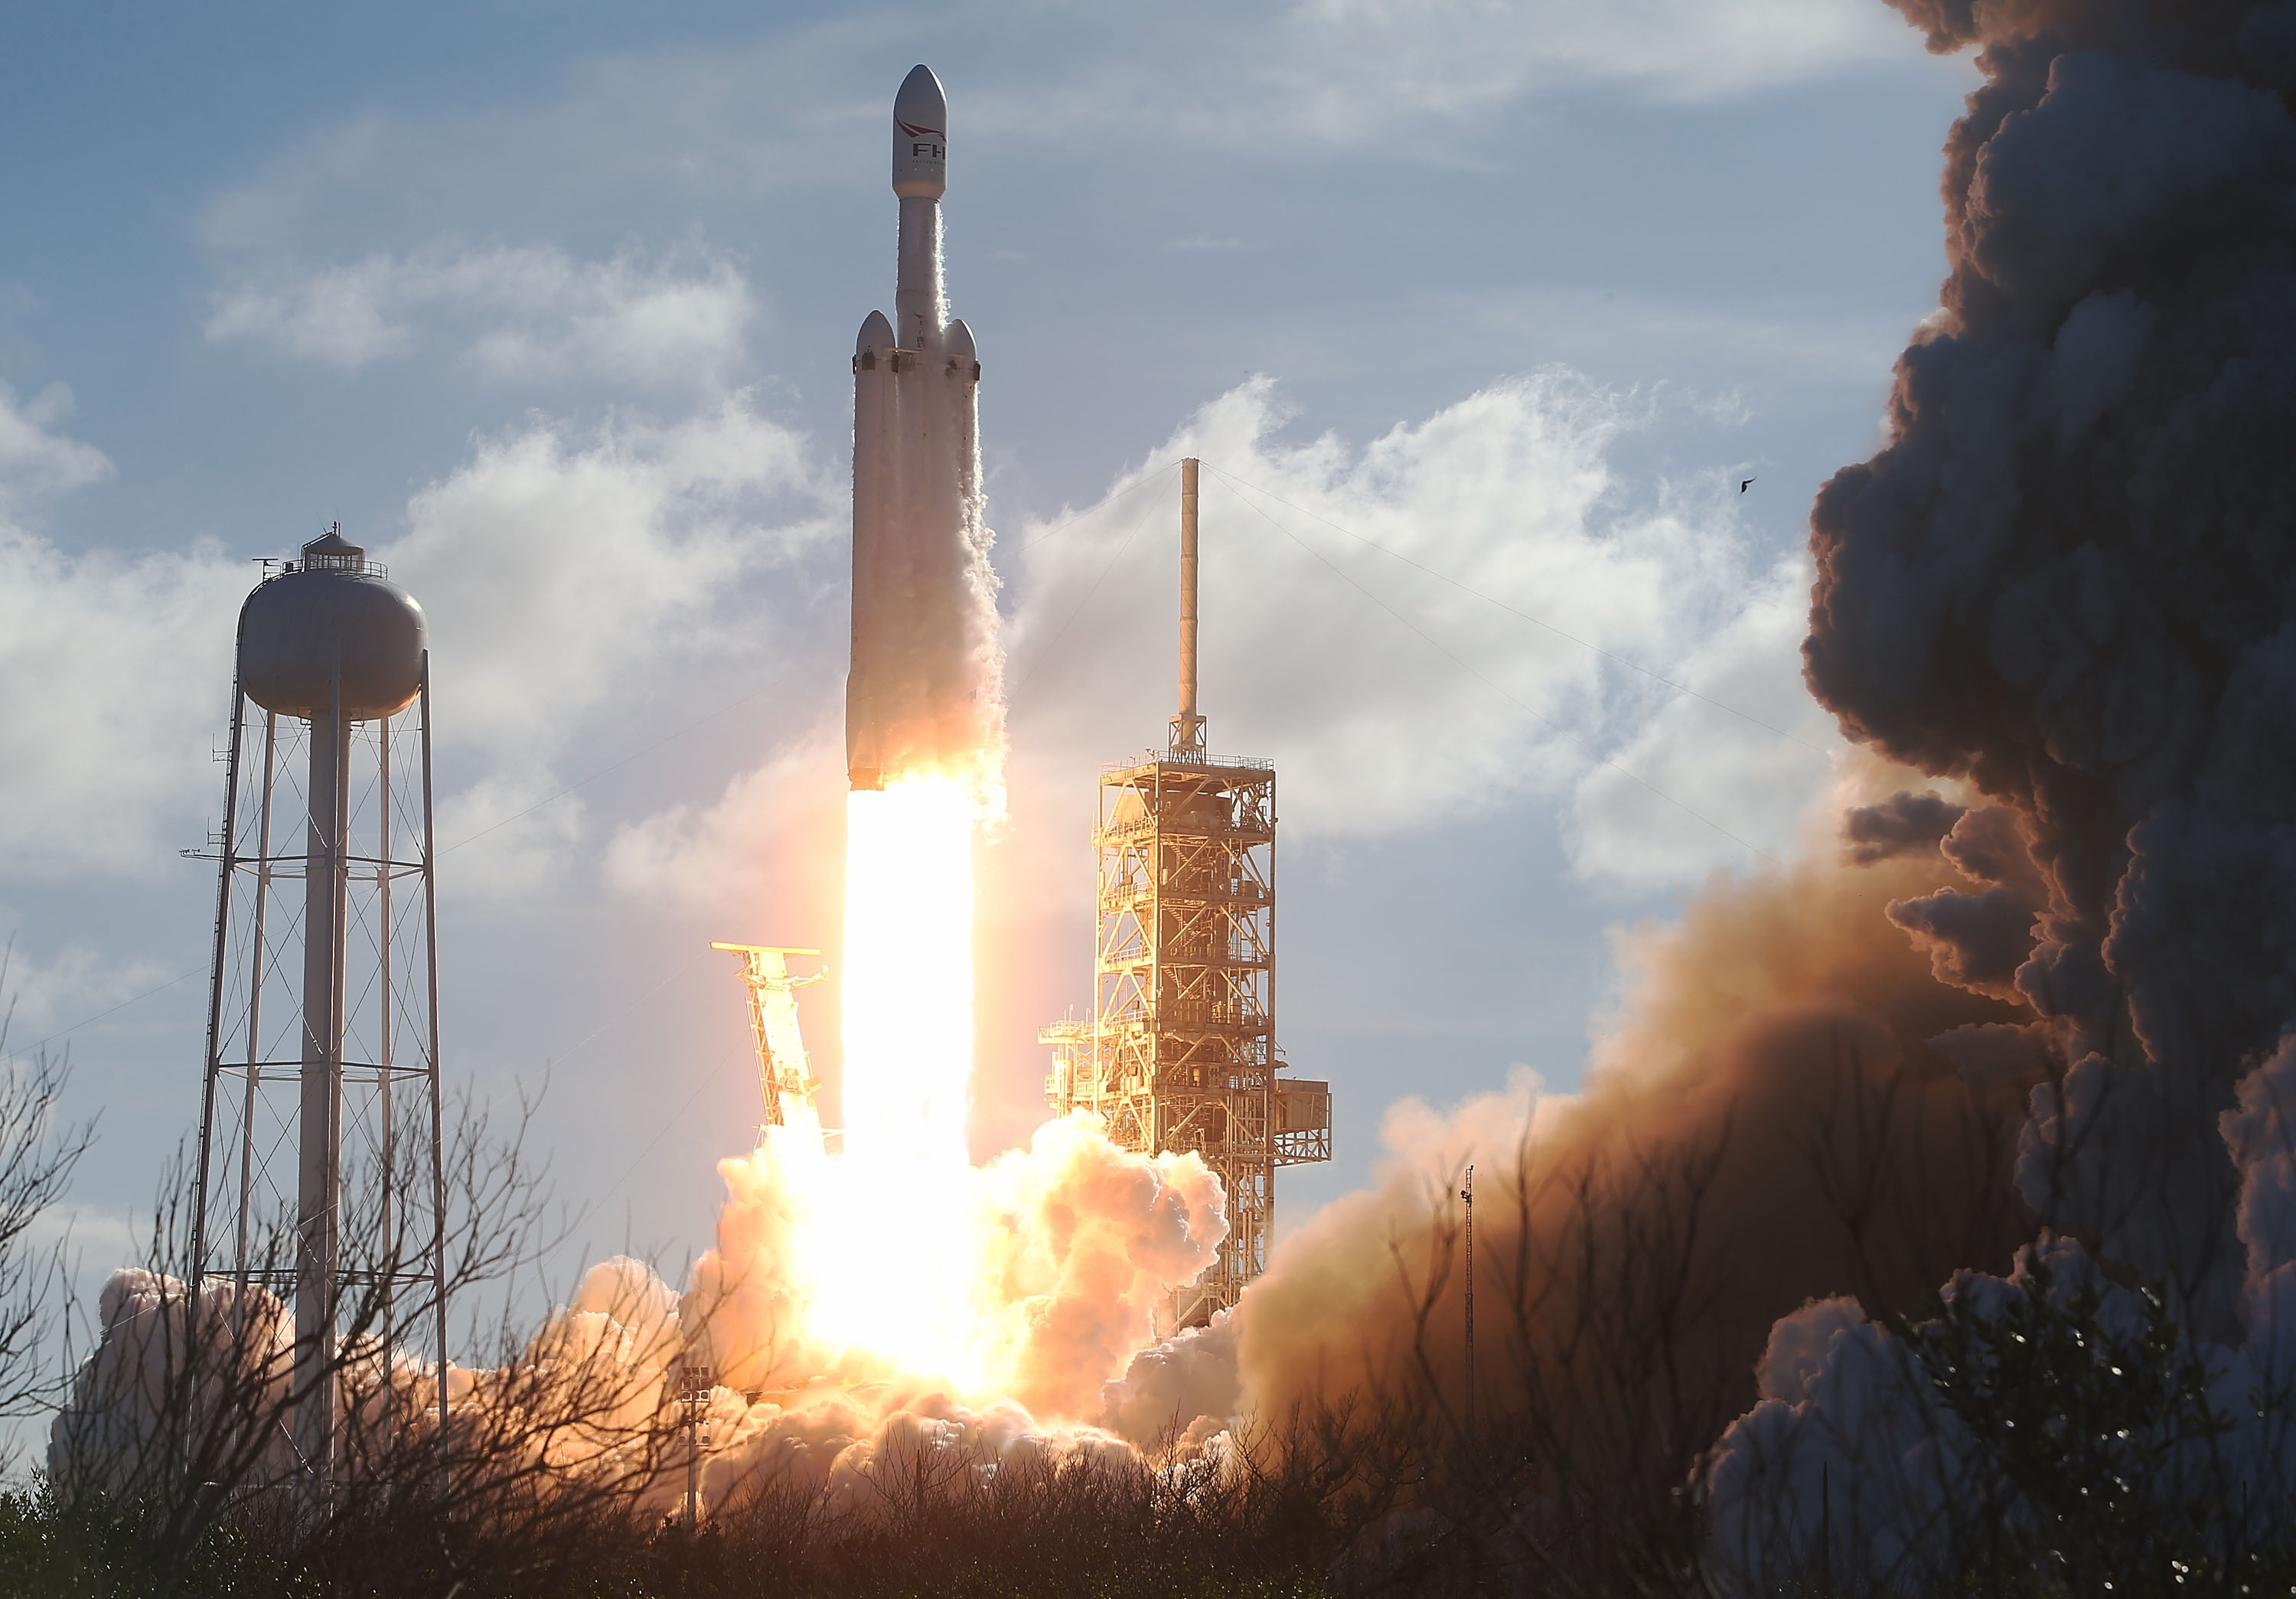 The SpaceX Falcon Heavy rocket lifts off its launch pad